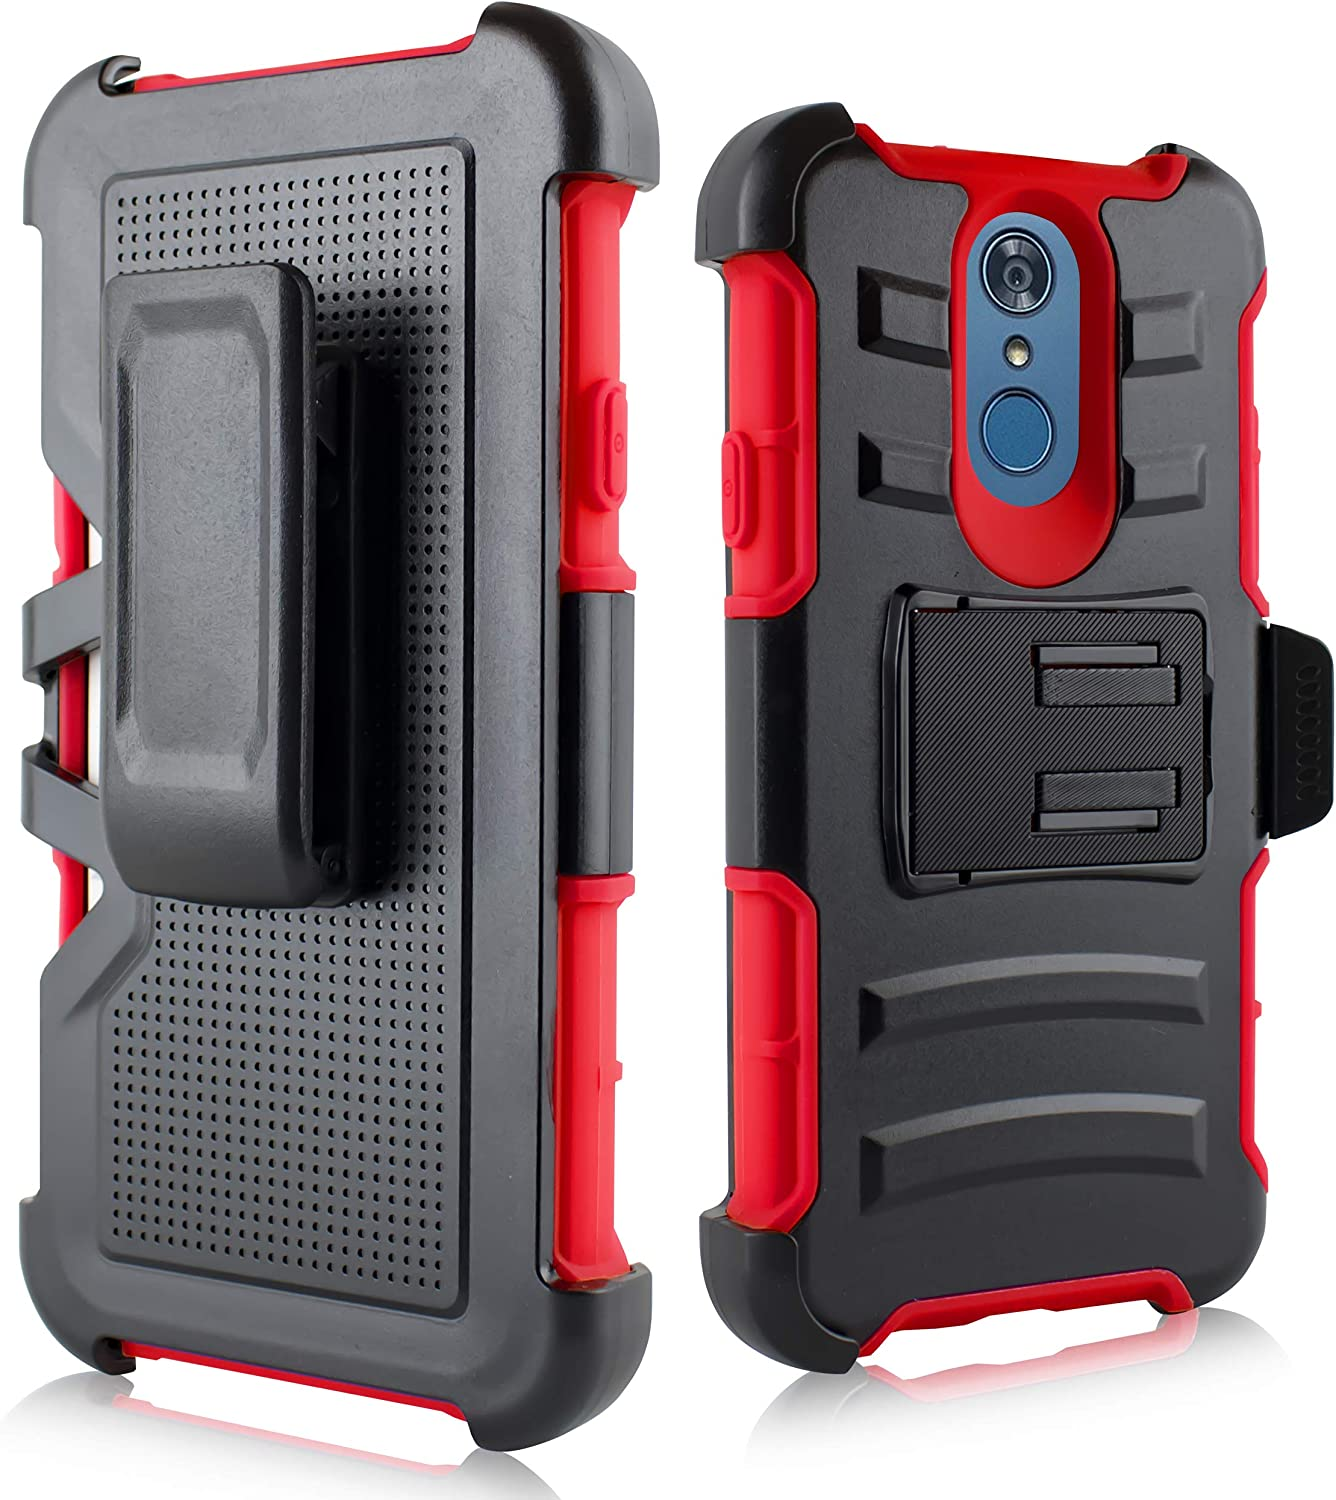 LG Q7 Case, LG Q7 Plus Case, LG Q7 Alpha Case, Heavy Duty Shockproof Dual Layer Protection Case w/Belt Clip and Kickstand for LG Q7 Plus 64gb T 5 Mobile Unlocked (Red)